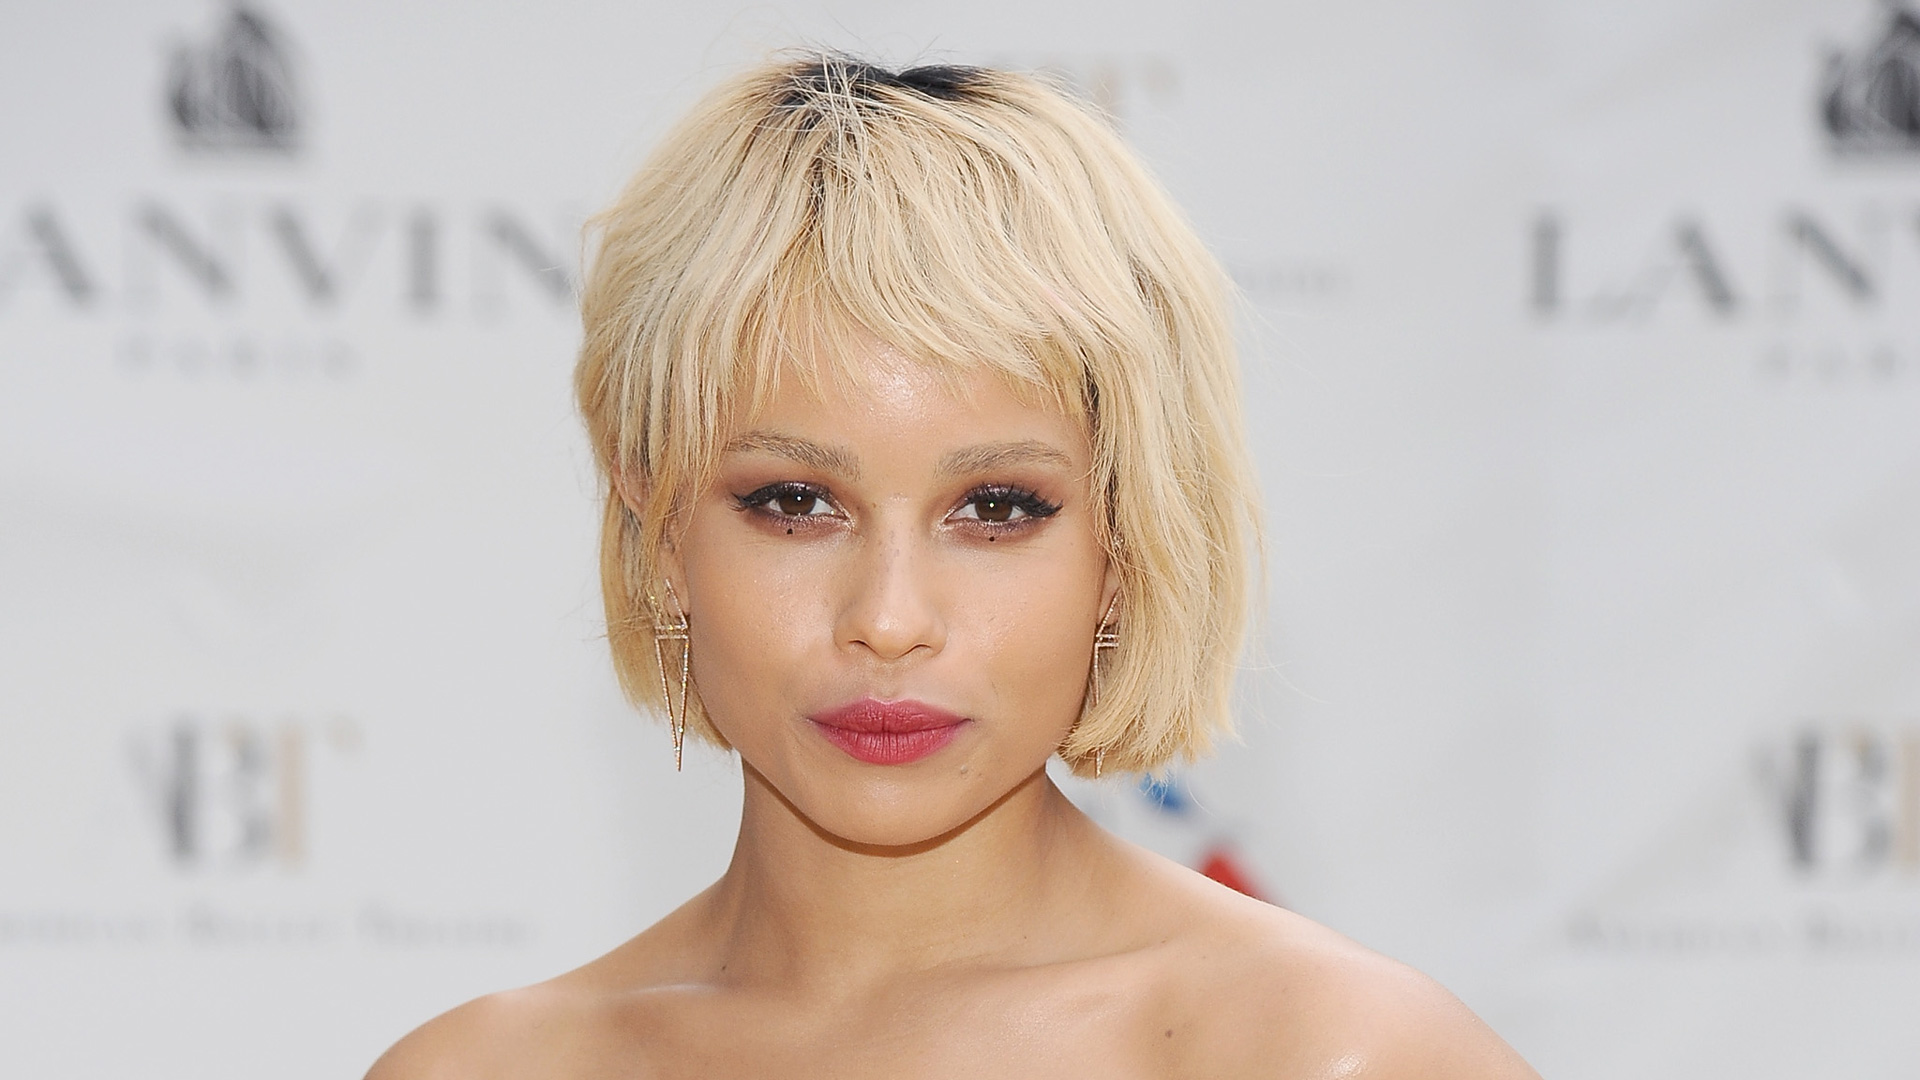 Zoe Kravitz attends the American Ballet Theatre 2014 Opening Night Spring Gala wearing dotted eye makeup